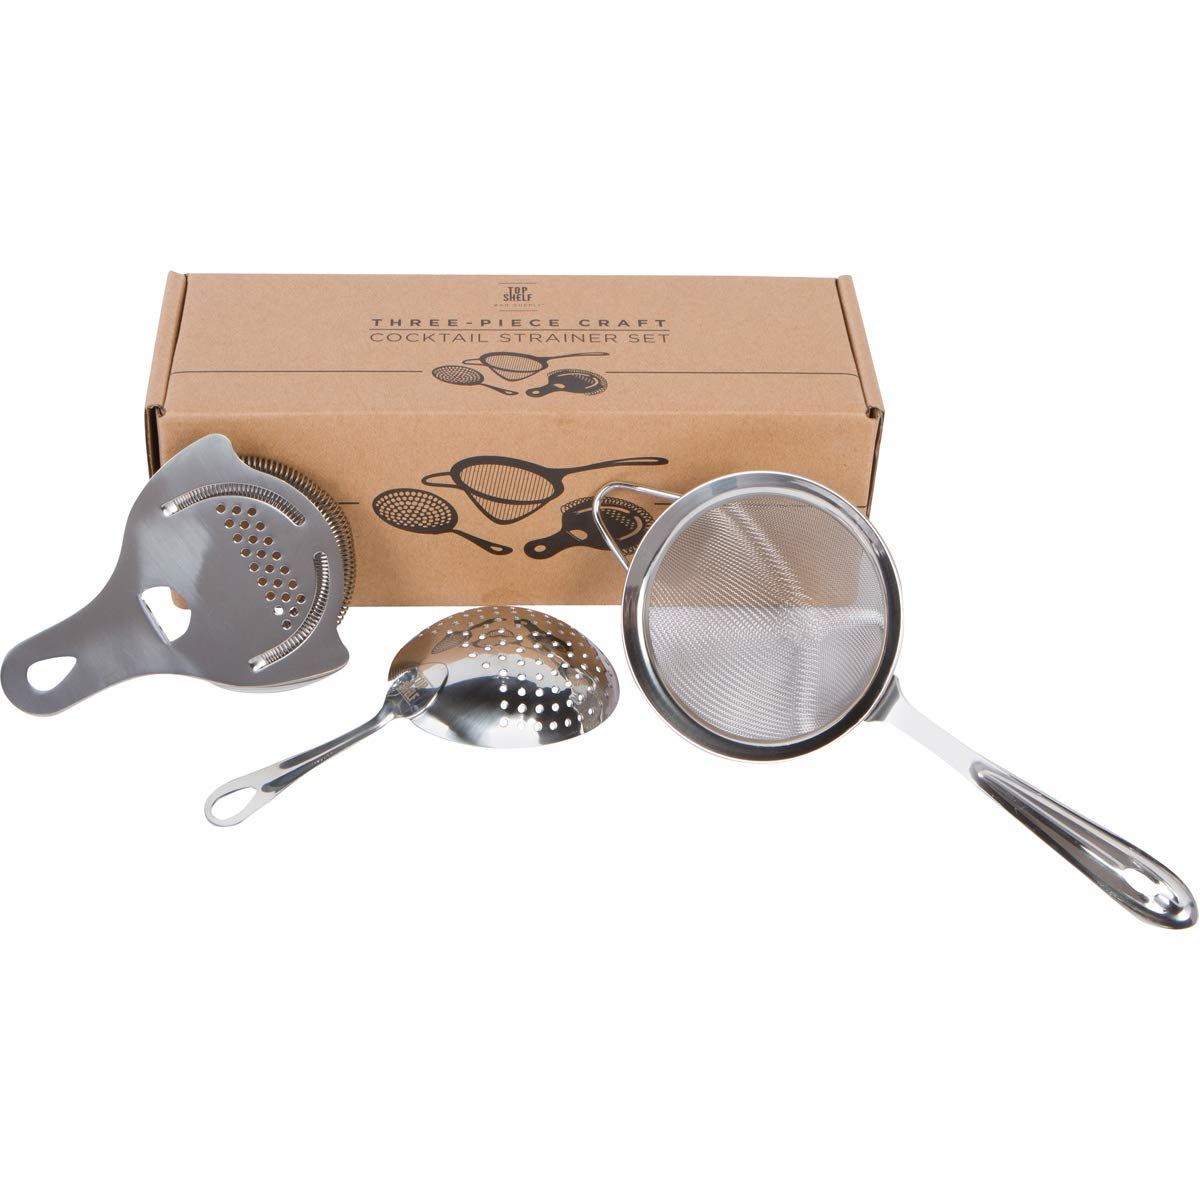 Cocktail Strainer Set: Stainless Steel Hawthorne Strainer, Julep Strainer and Conical Fine-Mesh Strainer by Top Shelf Bar Supply by Top Shelf Bar Supply